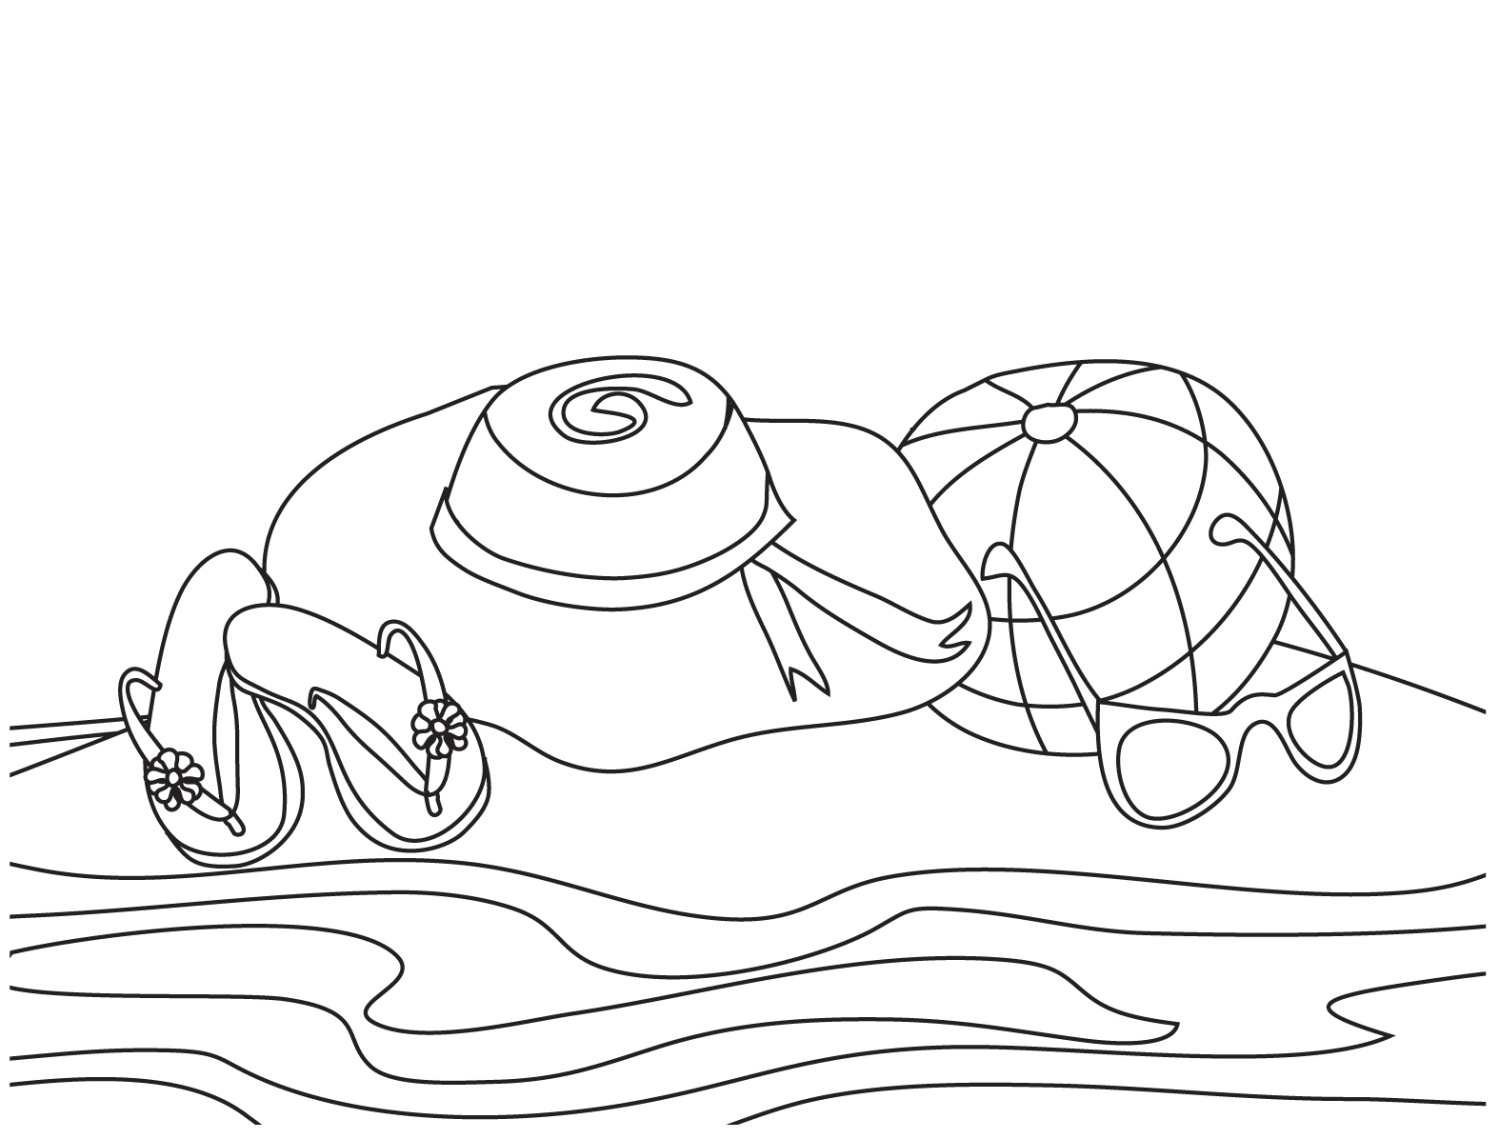 coloring beach pictures free printable beach coloring pages for kids beach coloring pictures 1 1